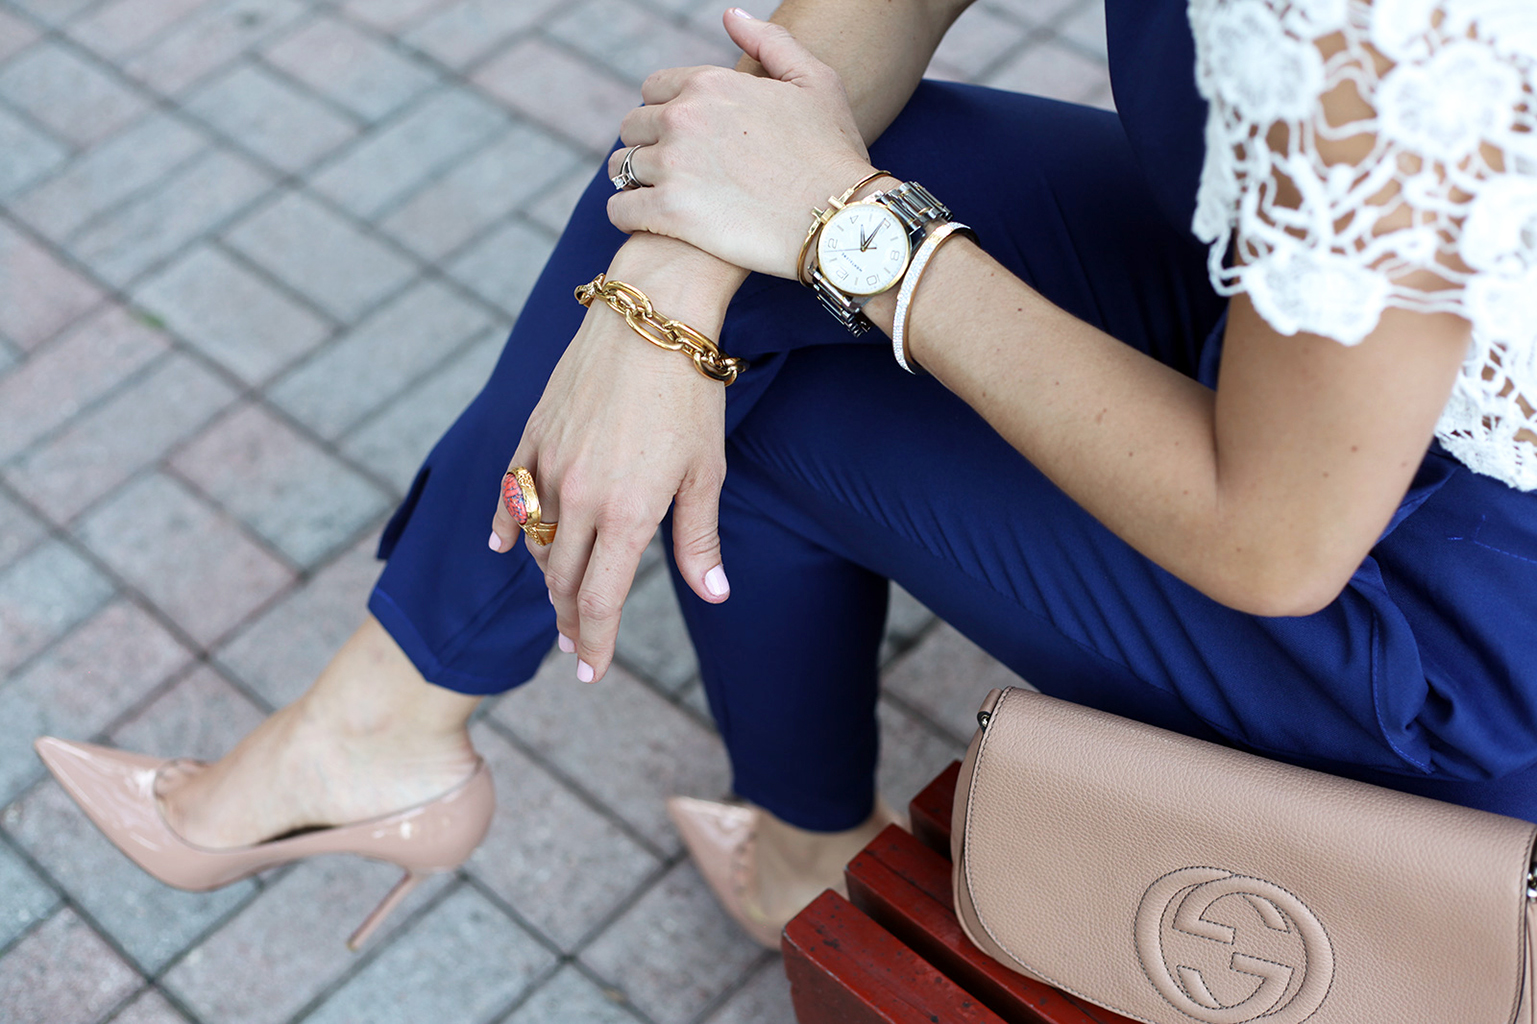 Blame it on Mei Fall 2015 Miami Fashion Blogger SheIn Jumpsuit Lace Top Montblanc TimeWalker Watch Tiffany T bracelet Gucci Soho YSL ring Louboutin Nude Pumps Henri Bendel